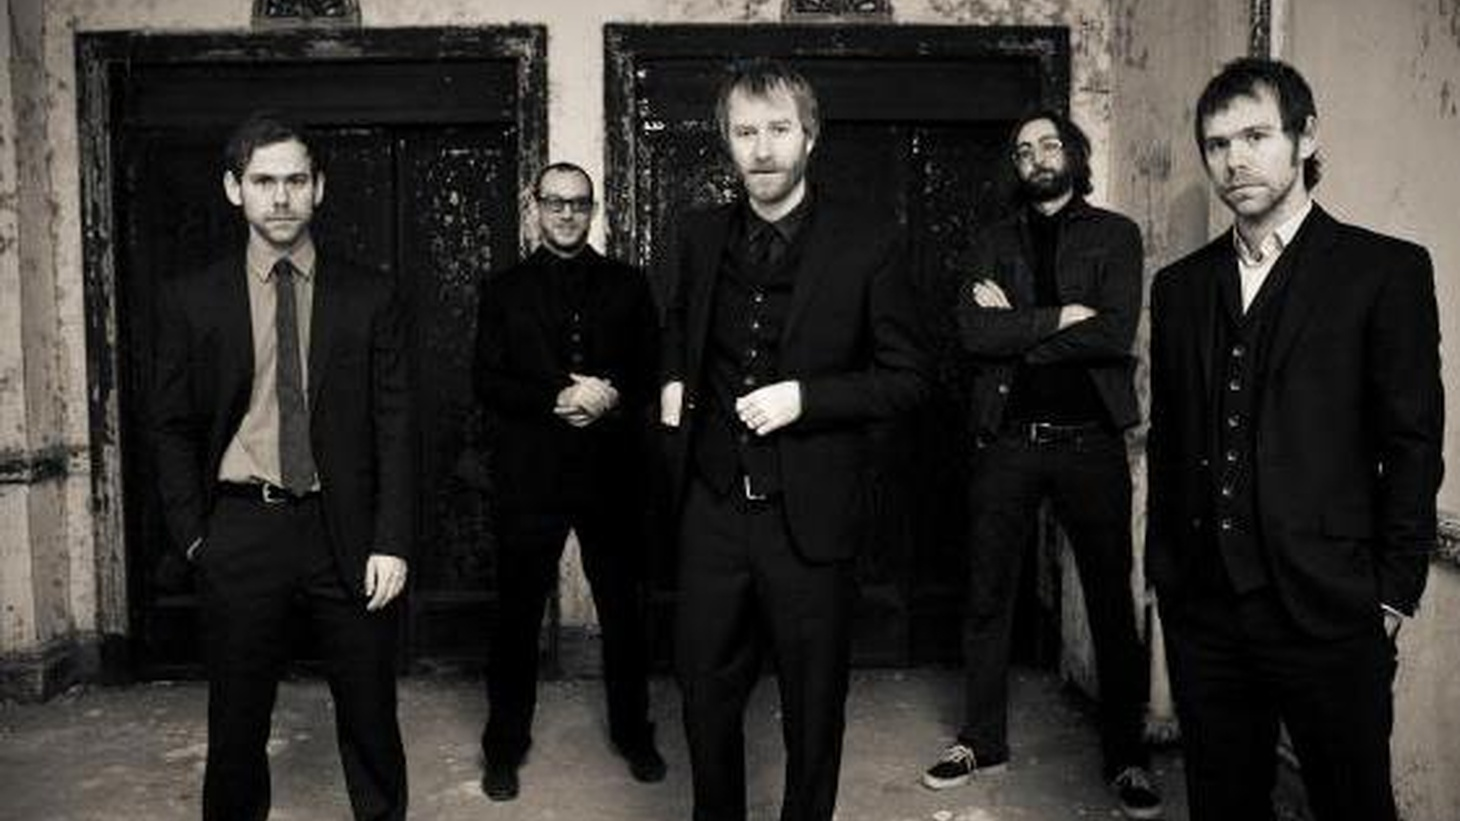 The National's 2010 release, High Violet, made many Top 10 lists and was featured on just about every music show here at KCRW. We hear live versions of the stunning album on Morning Becomes Eclectic at 11:15am.